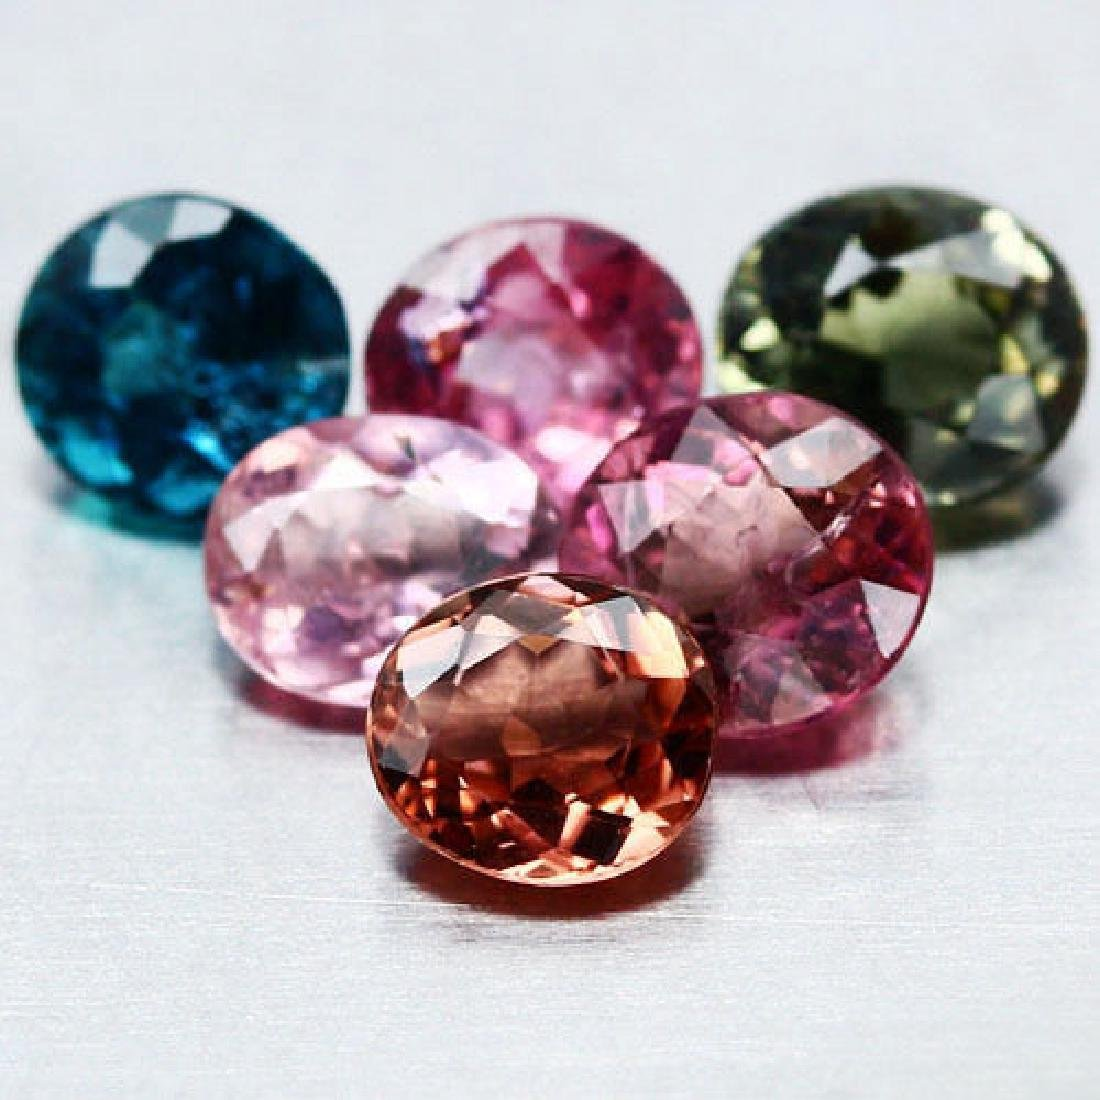 LOT OF 5.51 CTS. OF FANCY COLOR NIGERIAN TOURMALINE -